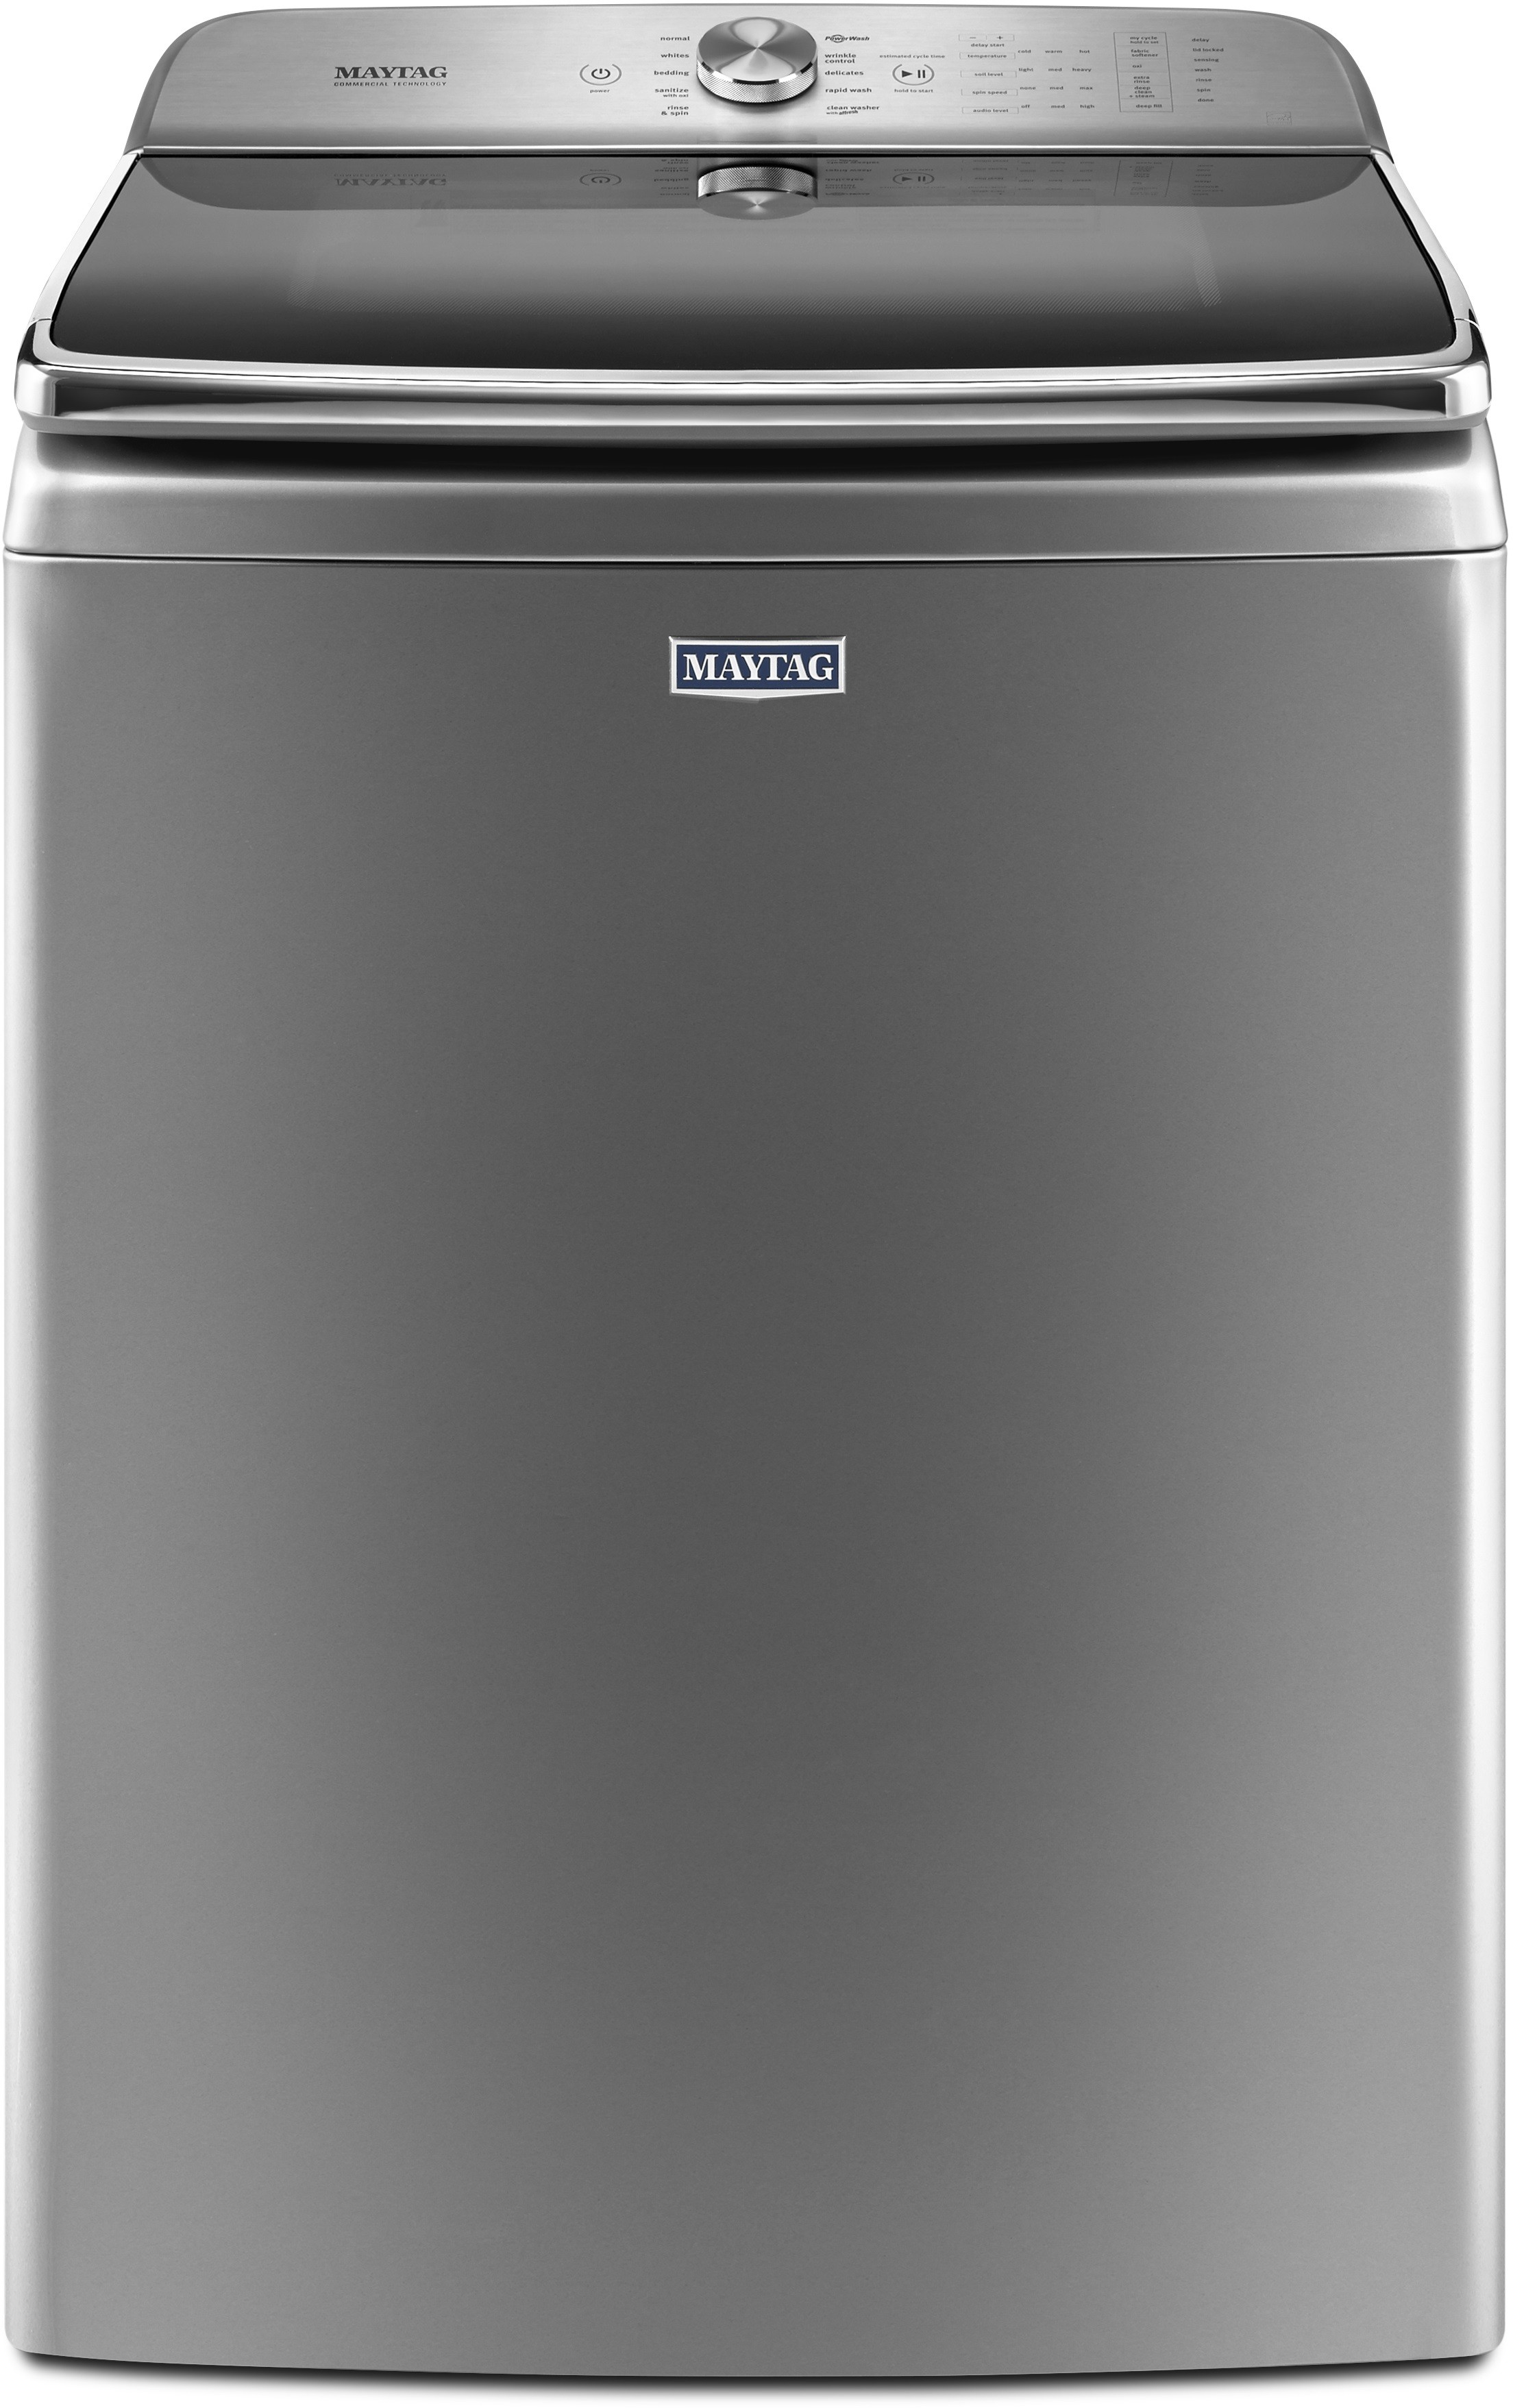 Maytag Mvwb955fc 30 Inch Top Load Washer With 6 2 Cu Ft